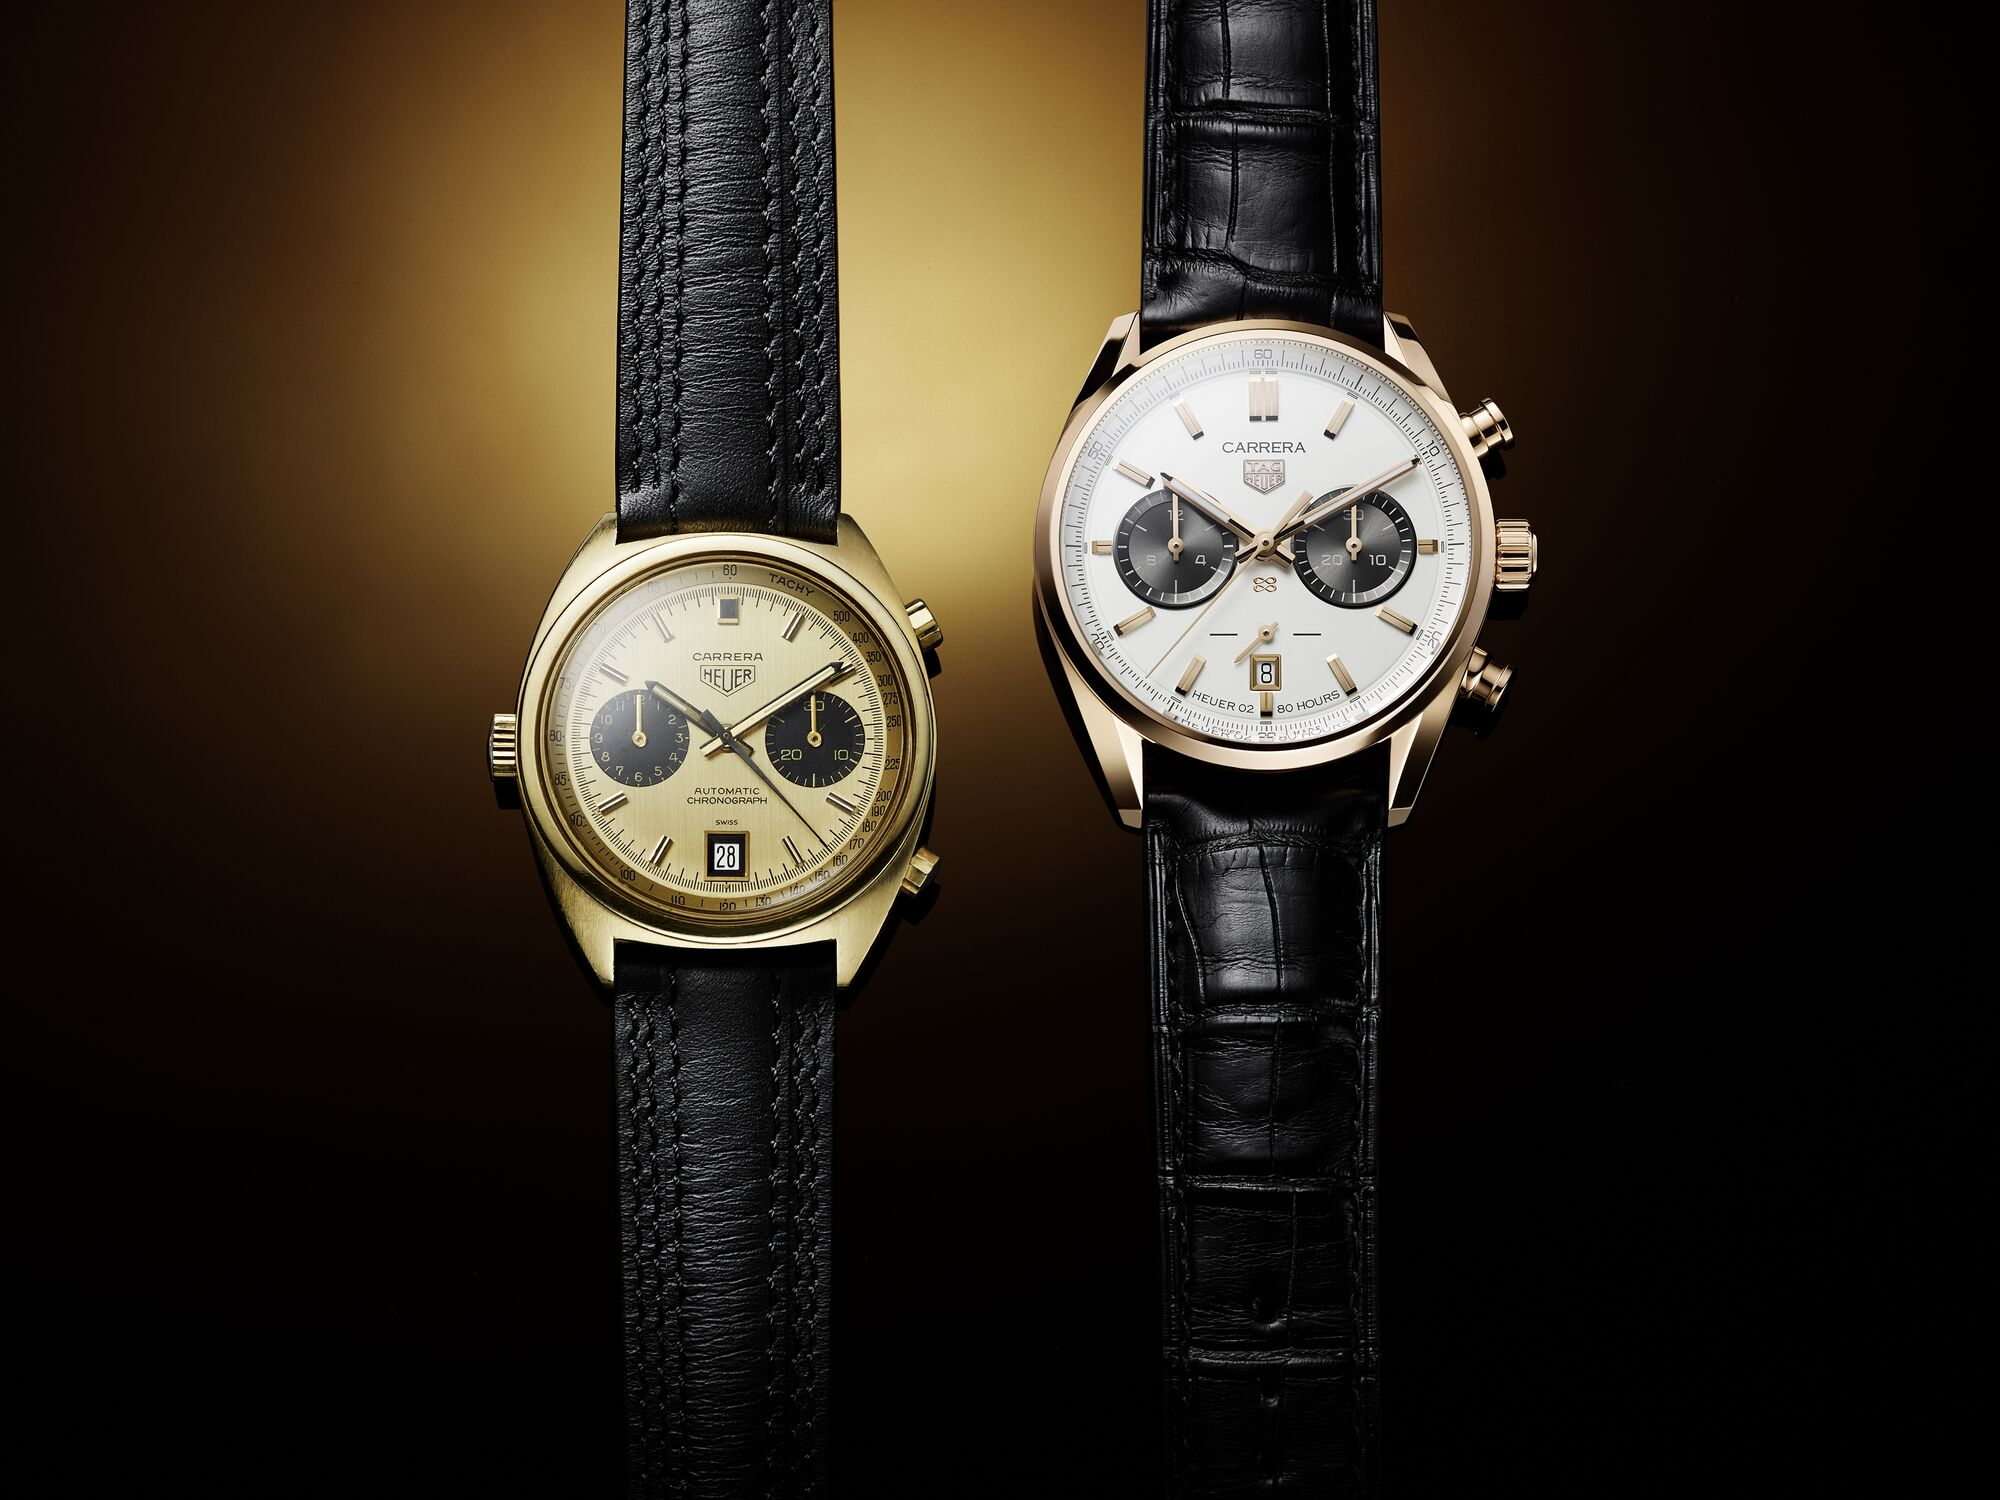 INTRODUCING: Staying golden with the TAG Heuer Carrera Chronograph Jack Heuer Birthday Gold Limited Edition